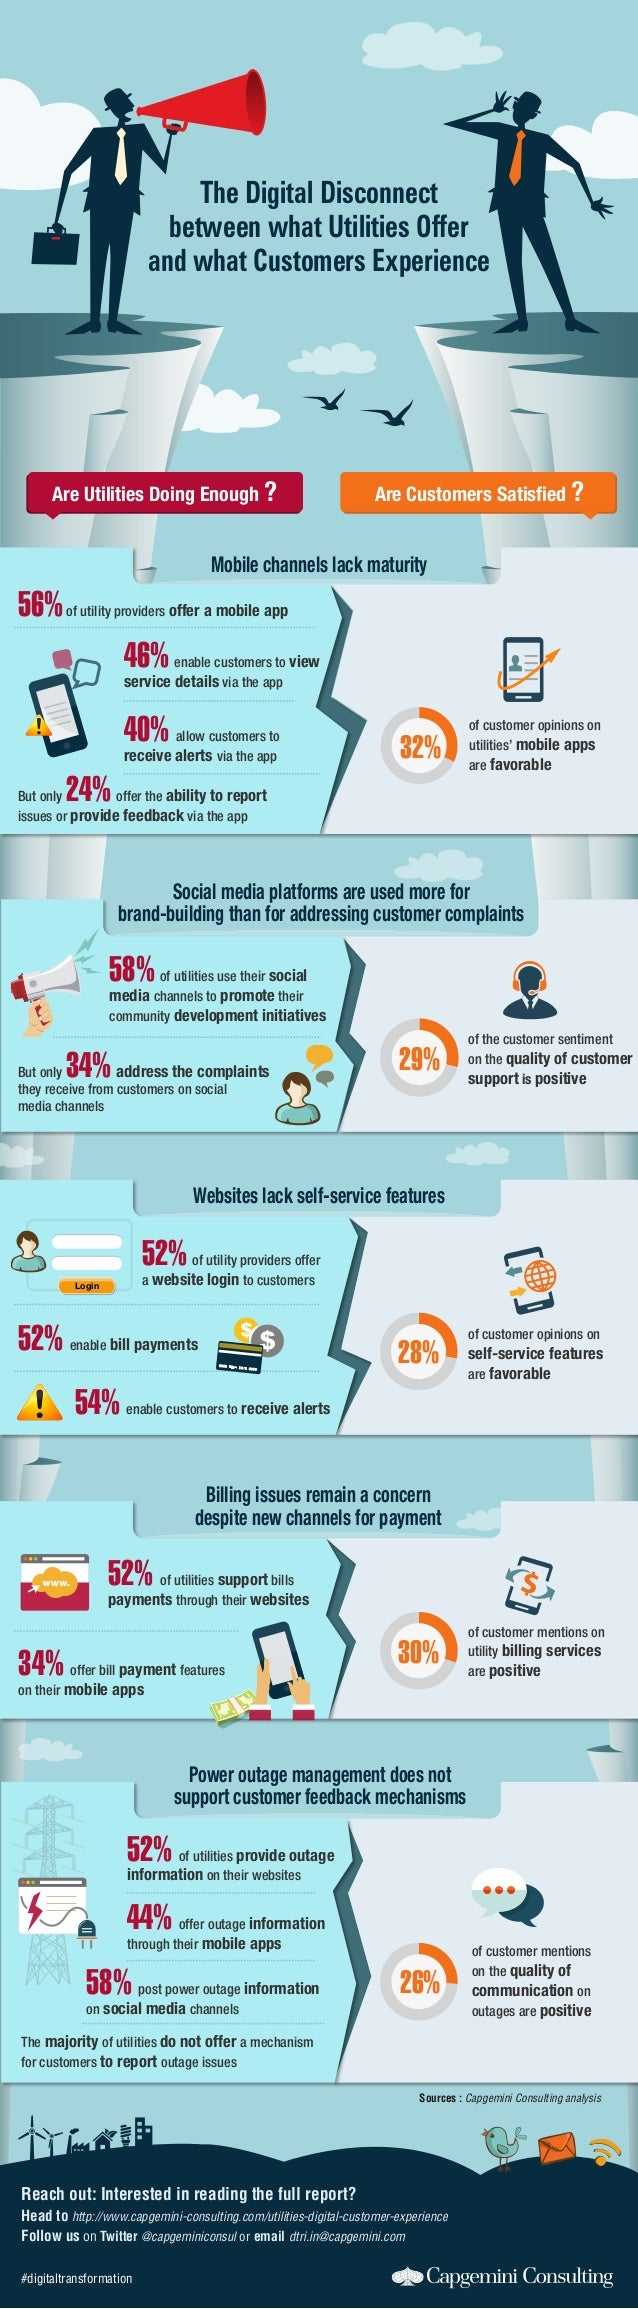 of customer opinions on self-service features are favorable of customer mentions on utility billing services are positive ...